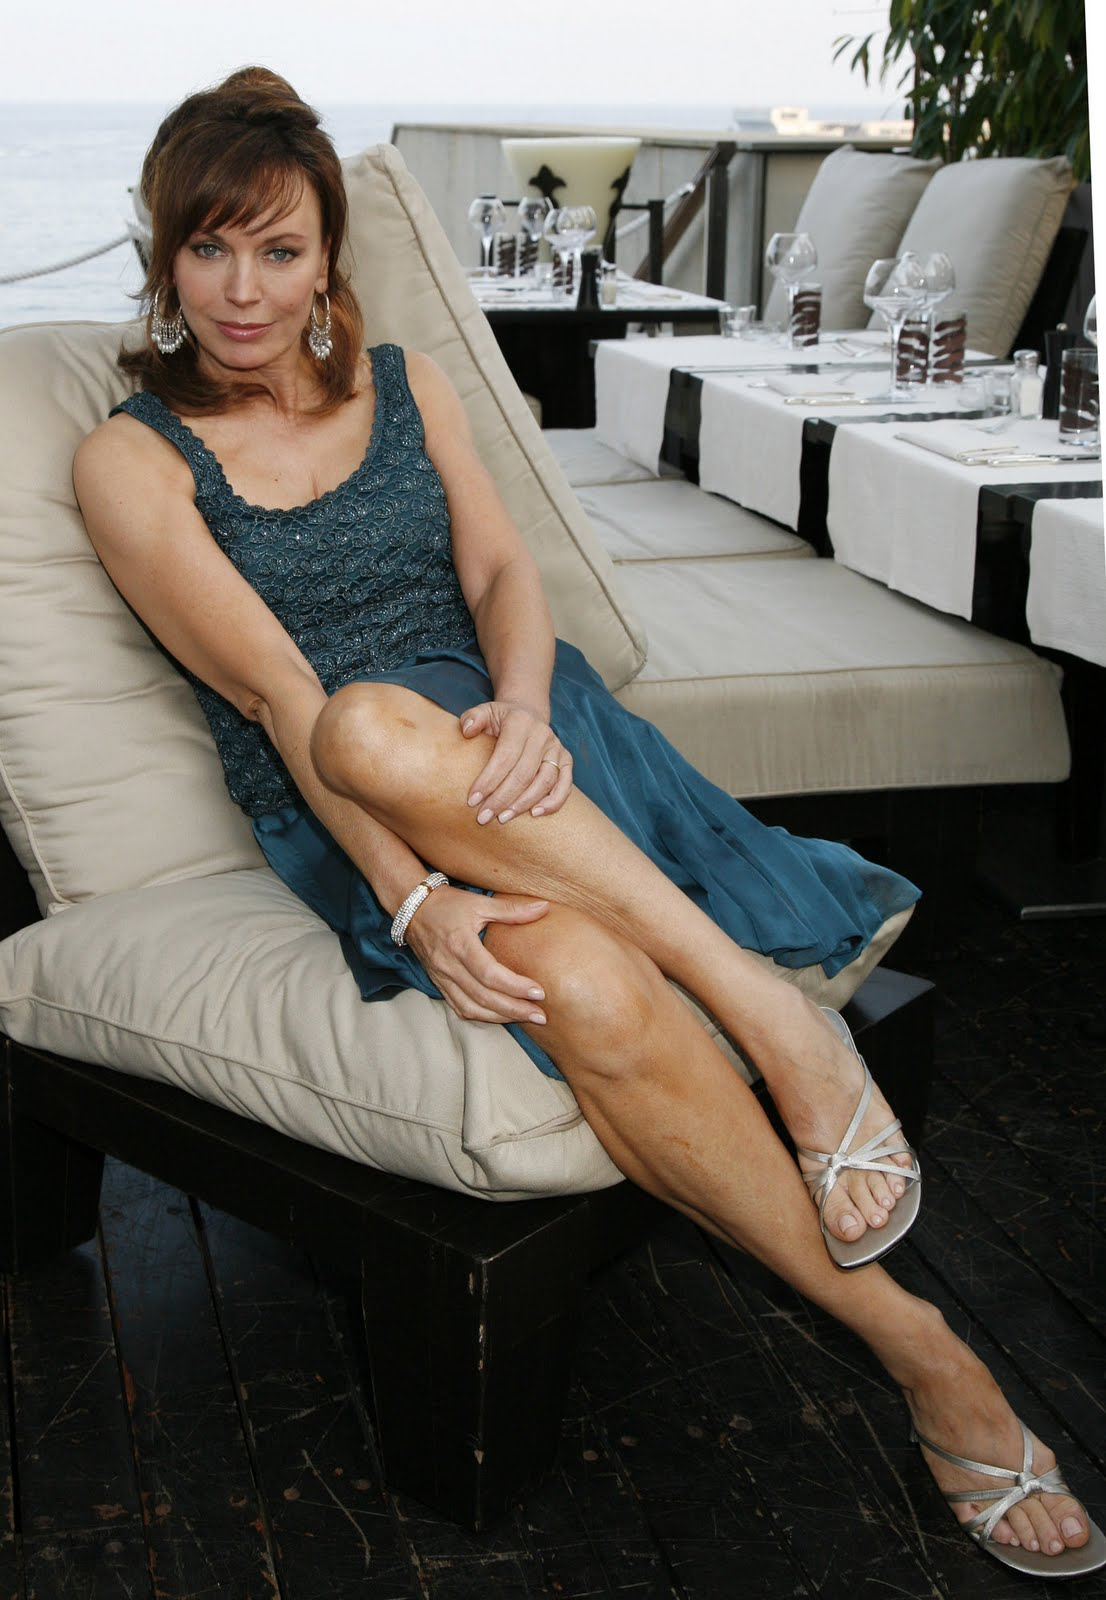 Imagesbee Dawn Steele View Feet Jpg